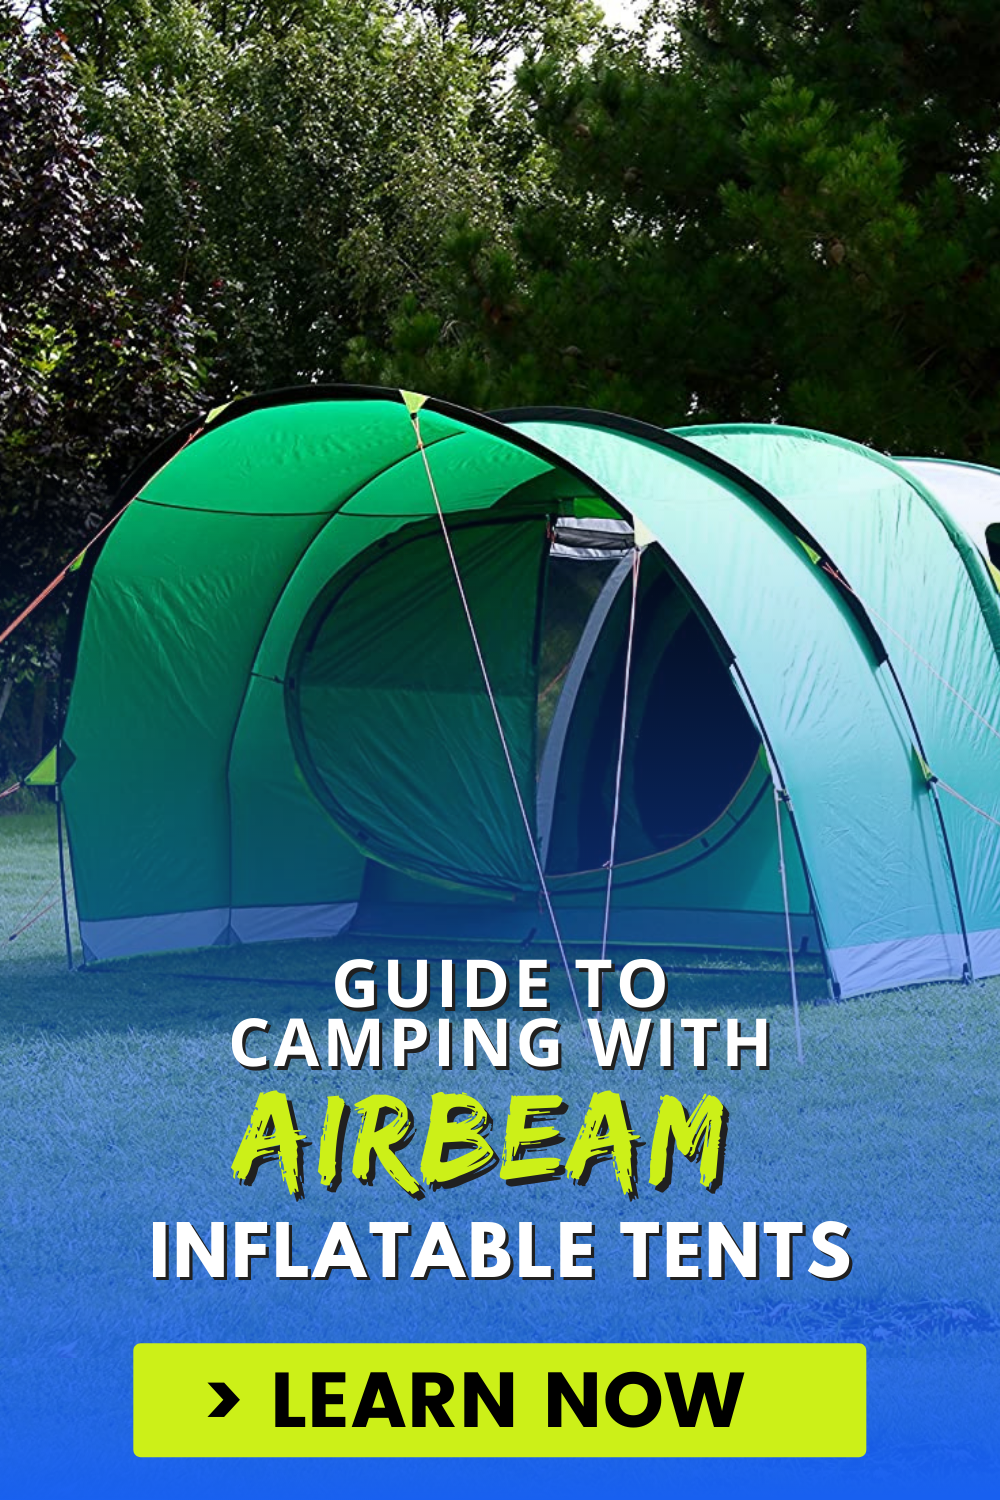 Guide to Camping with Airbeam Inflatable Tents